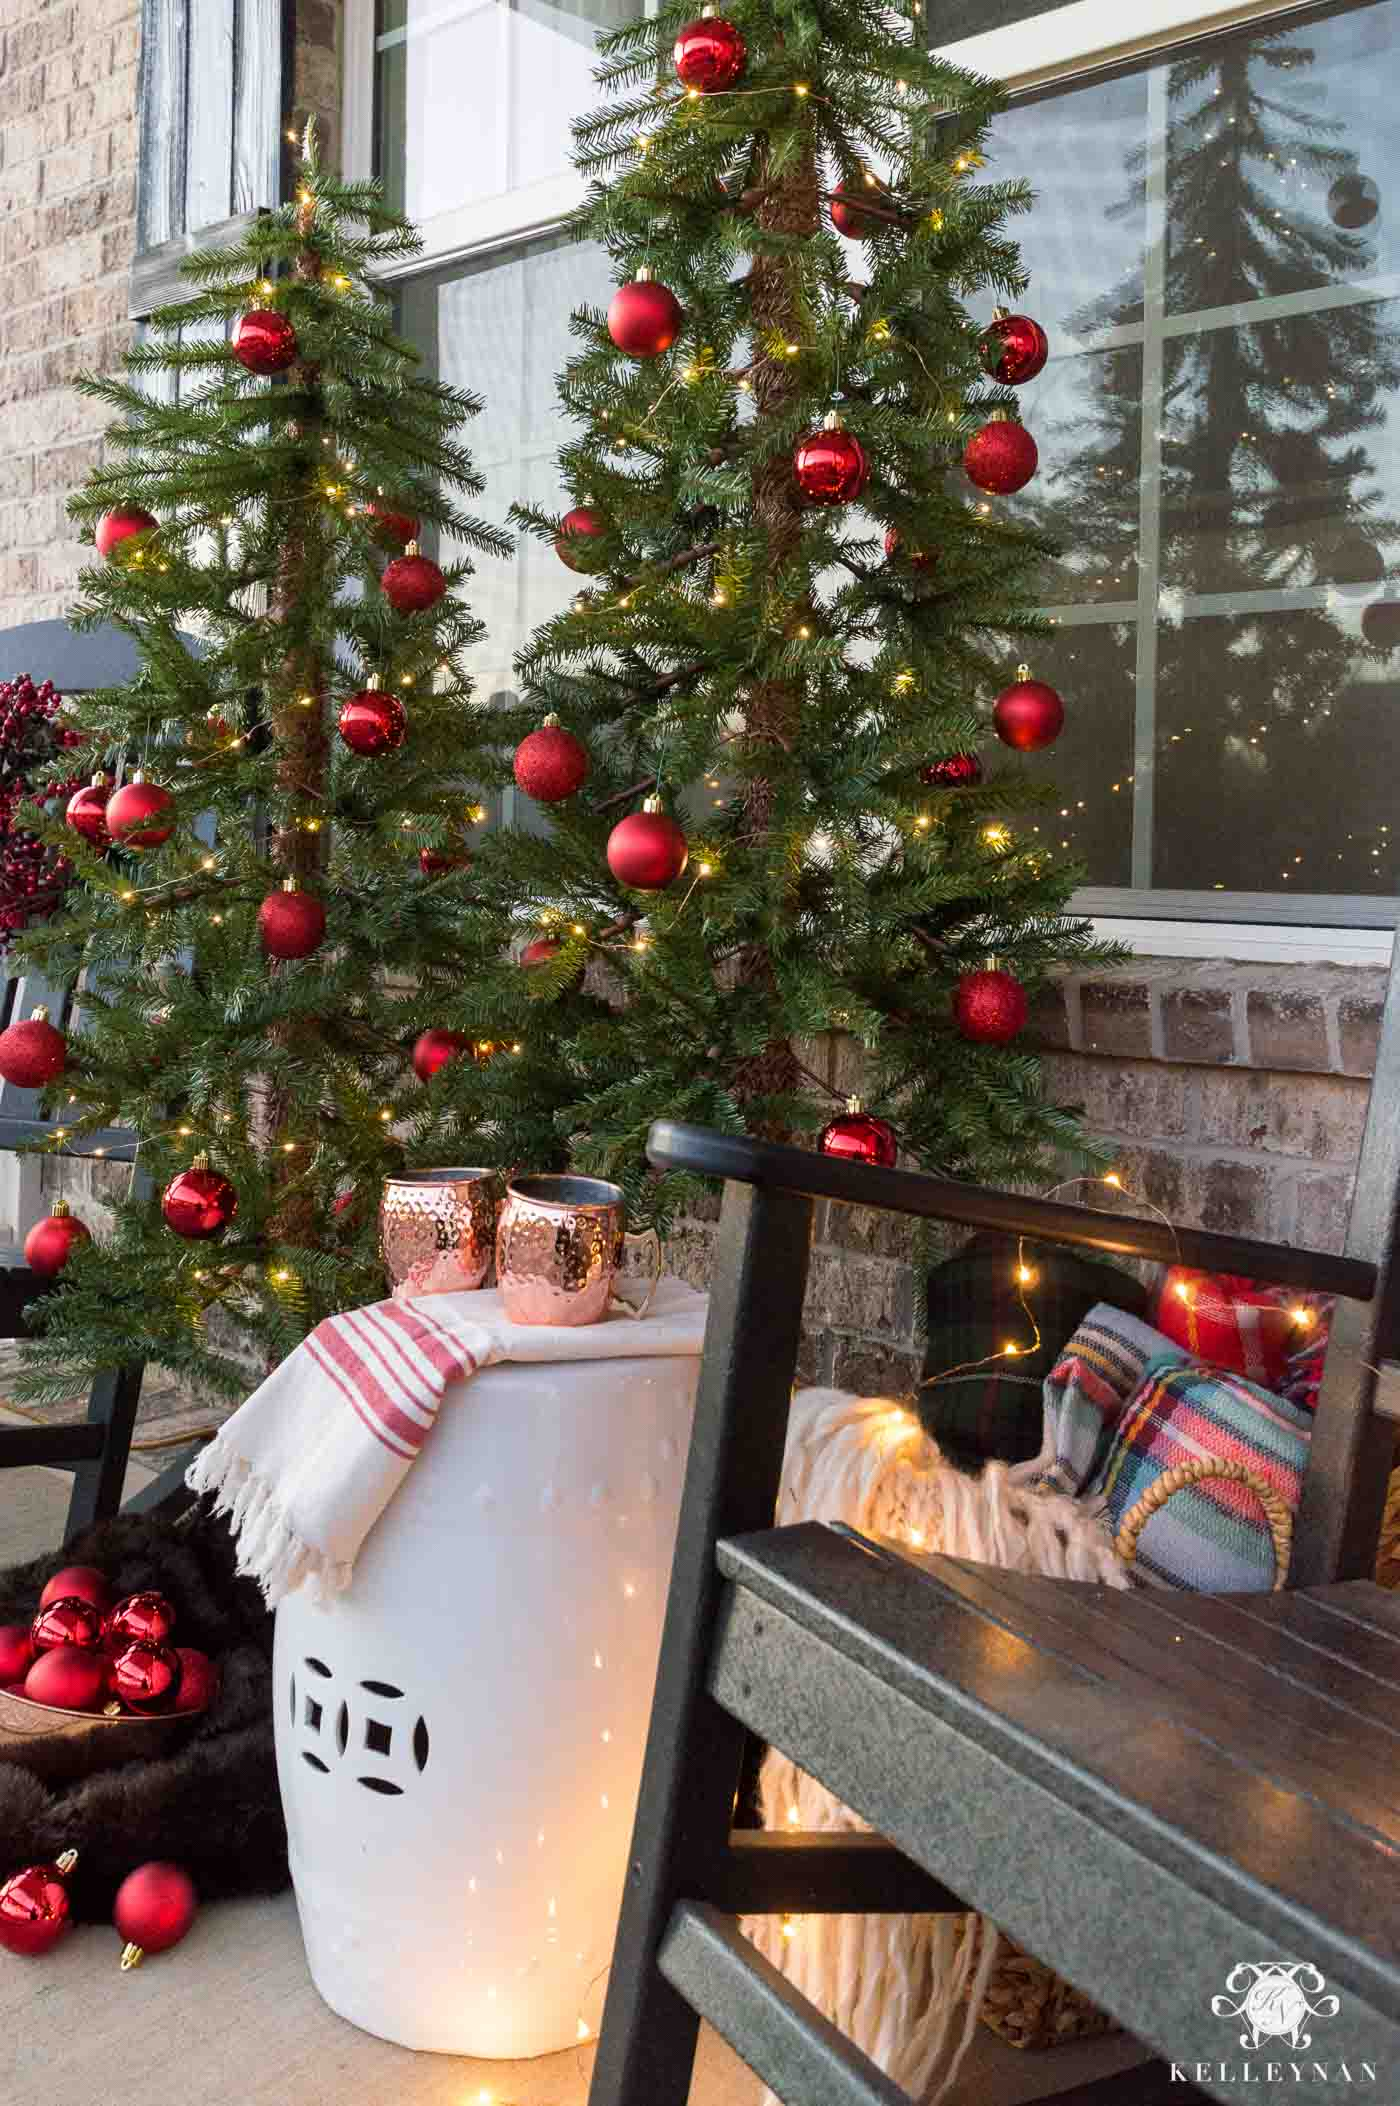 How to decorate a front porch for Christmas